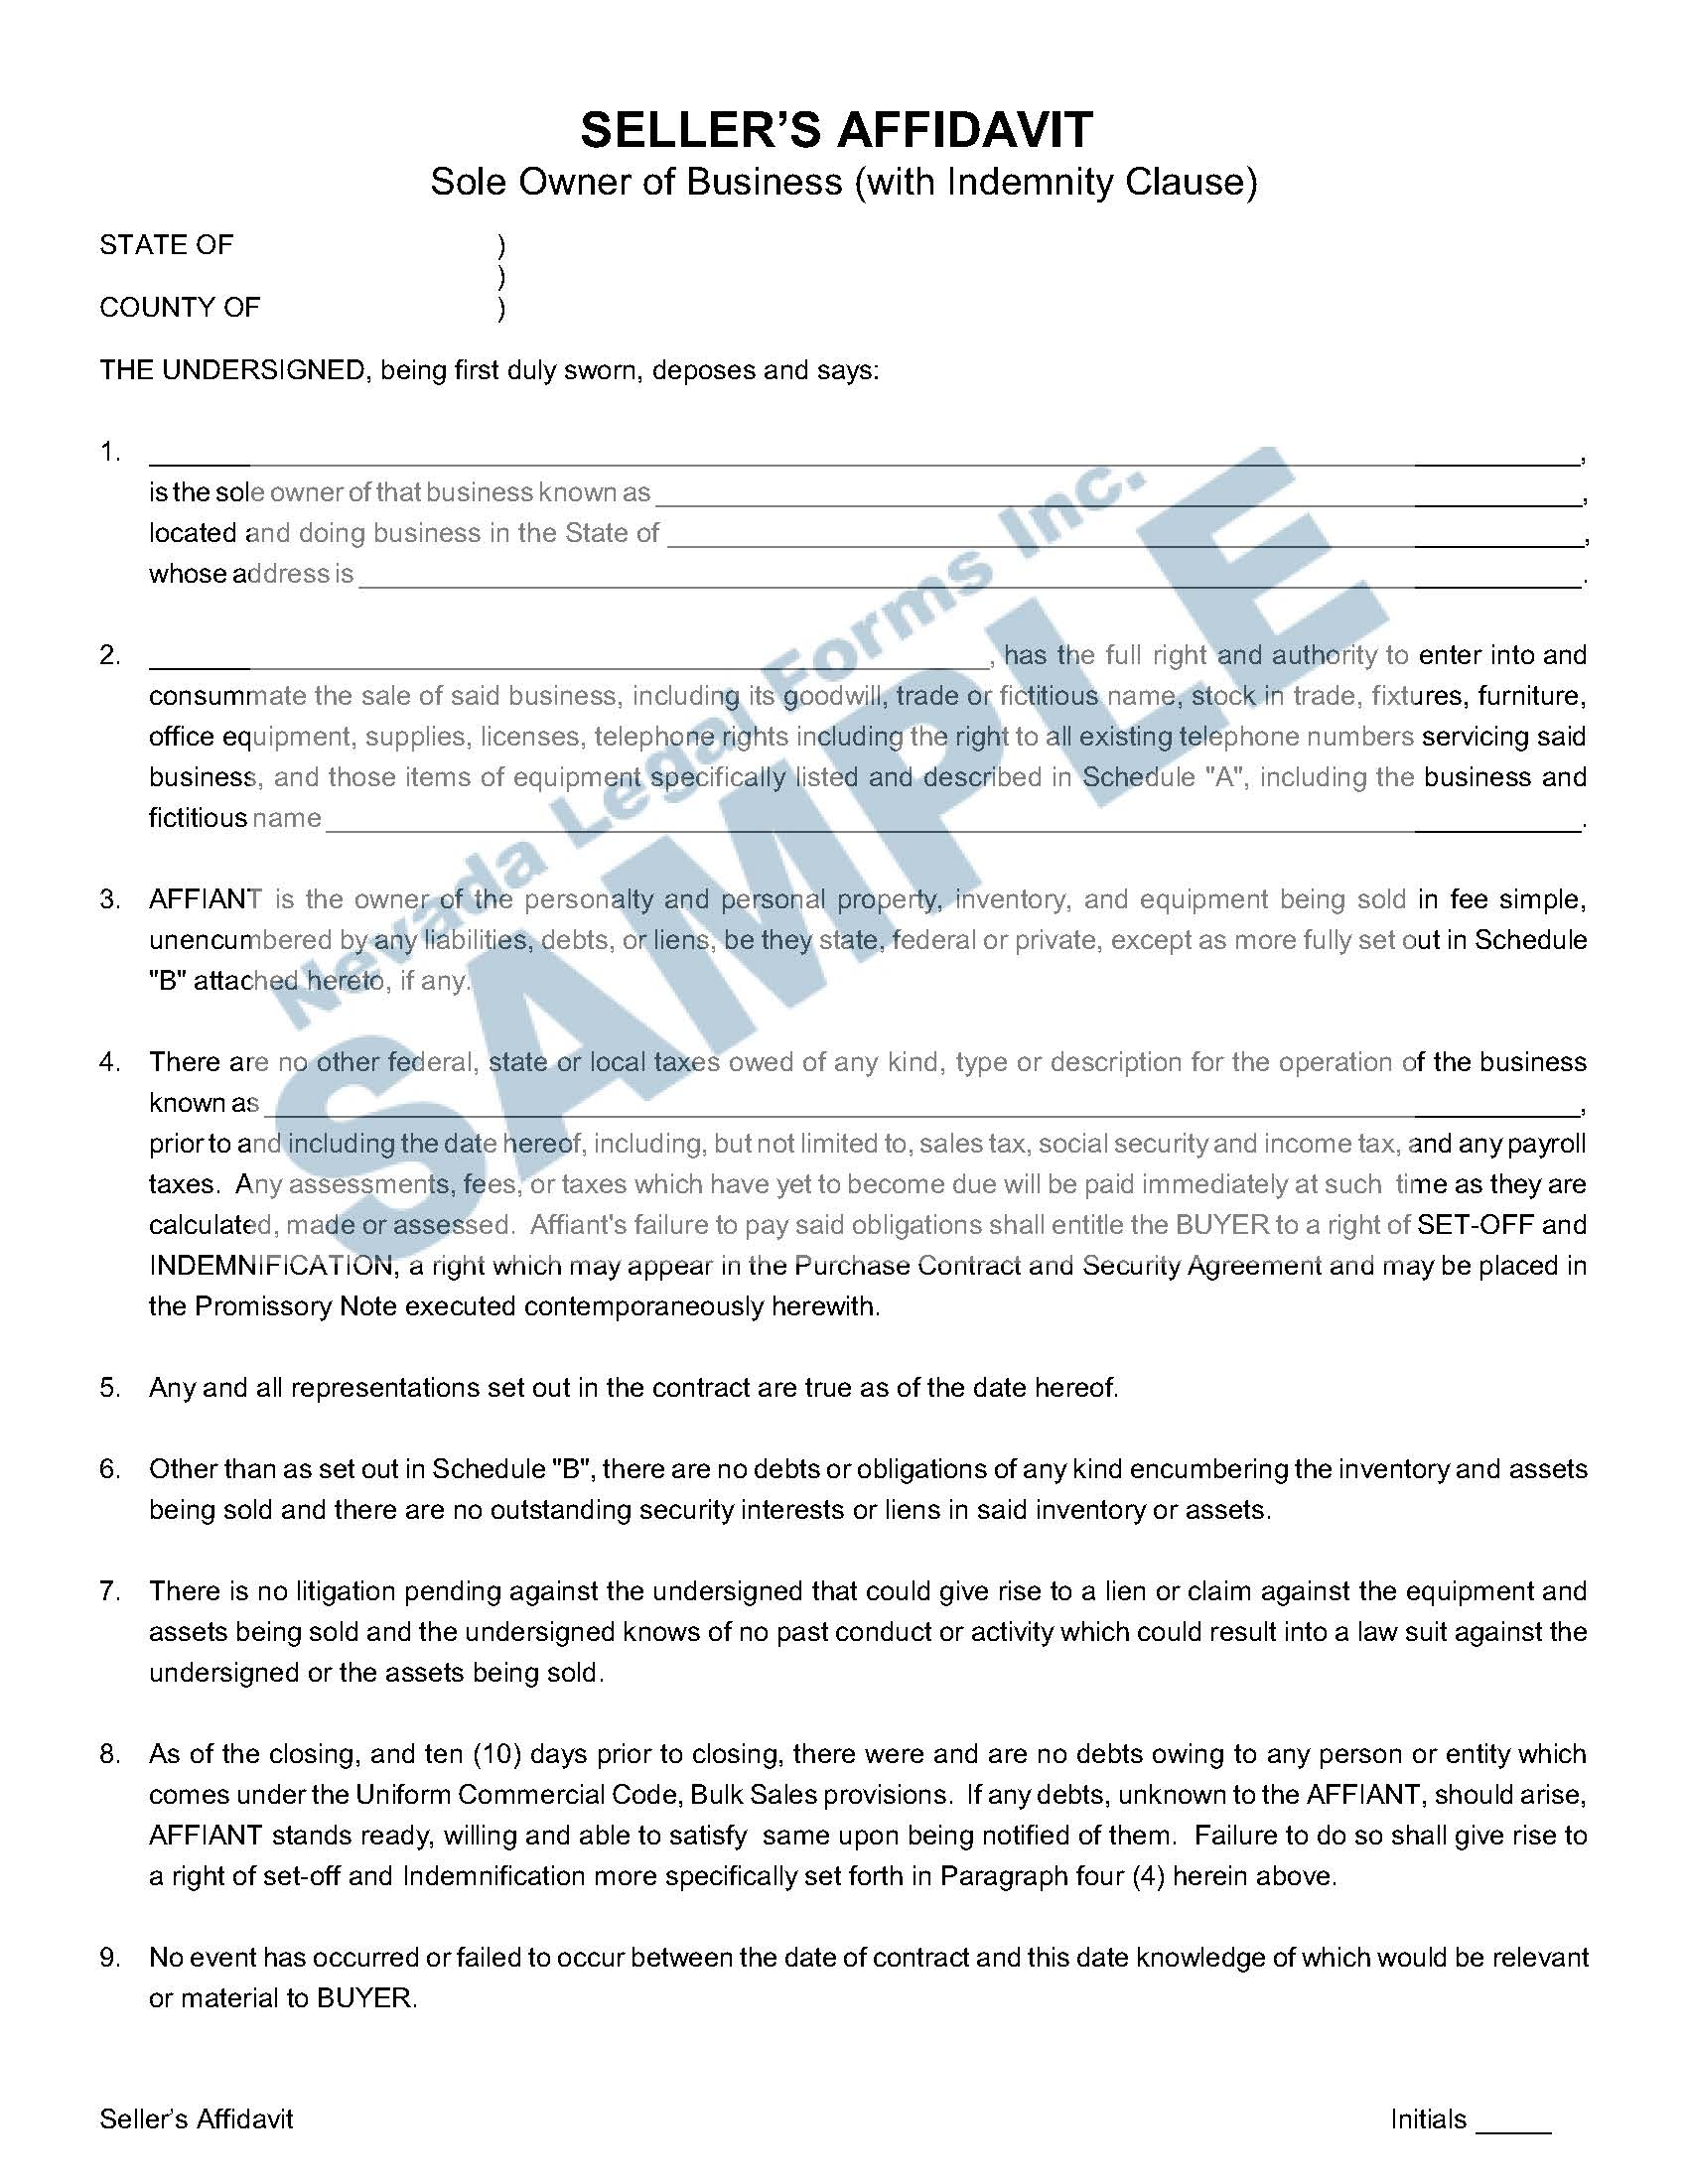 Seller S Affidavit Sole Owner With Indemnity Clause